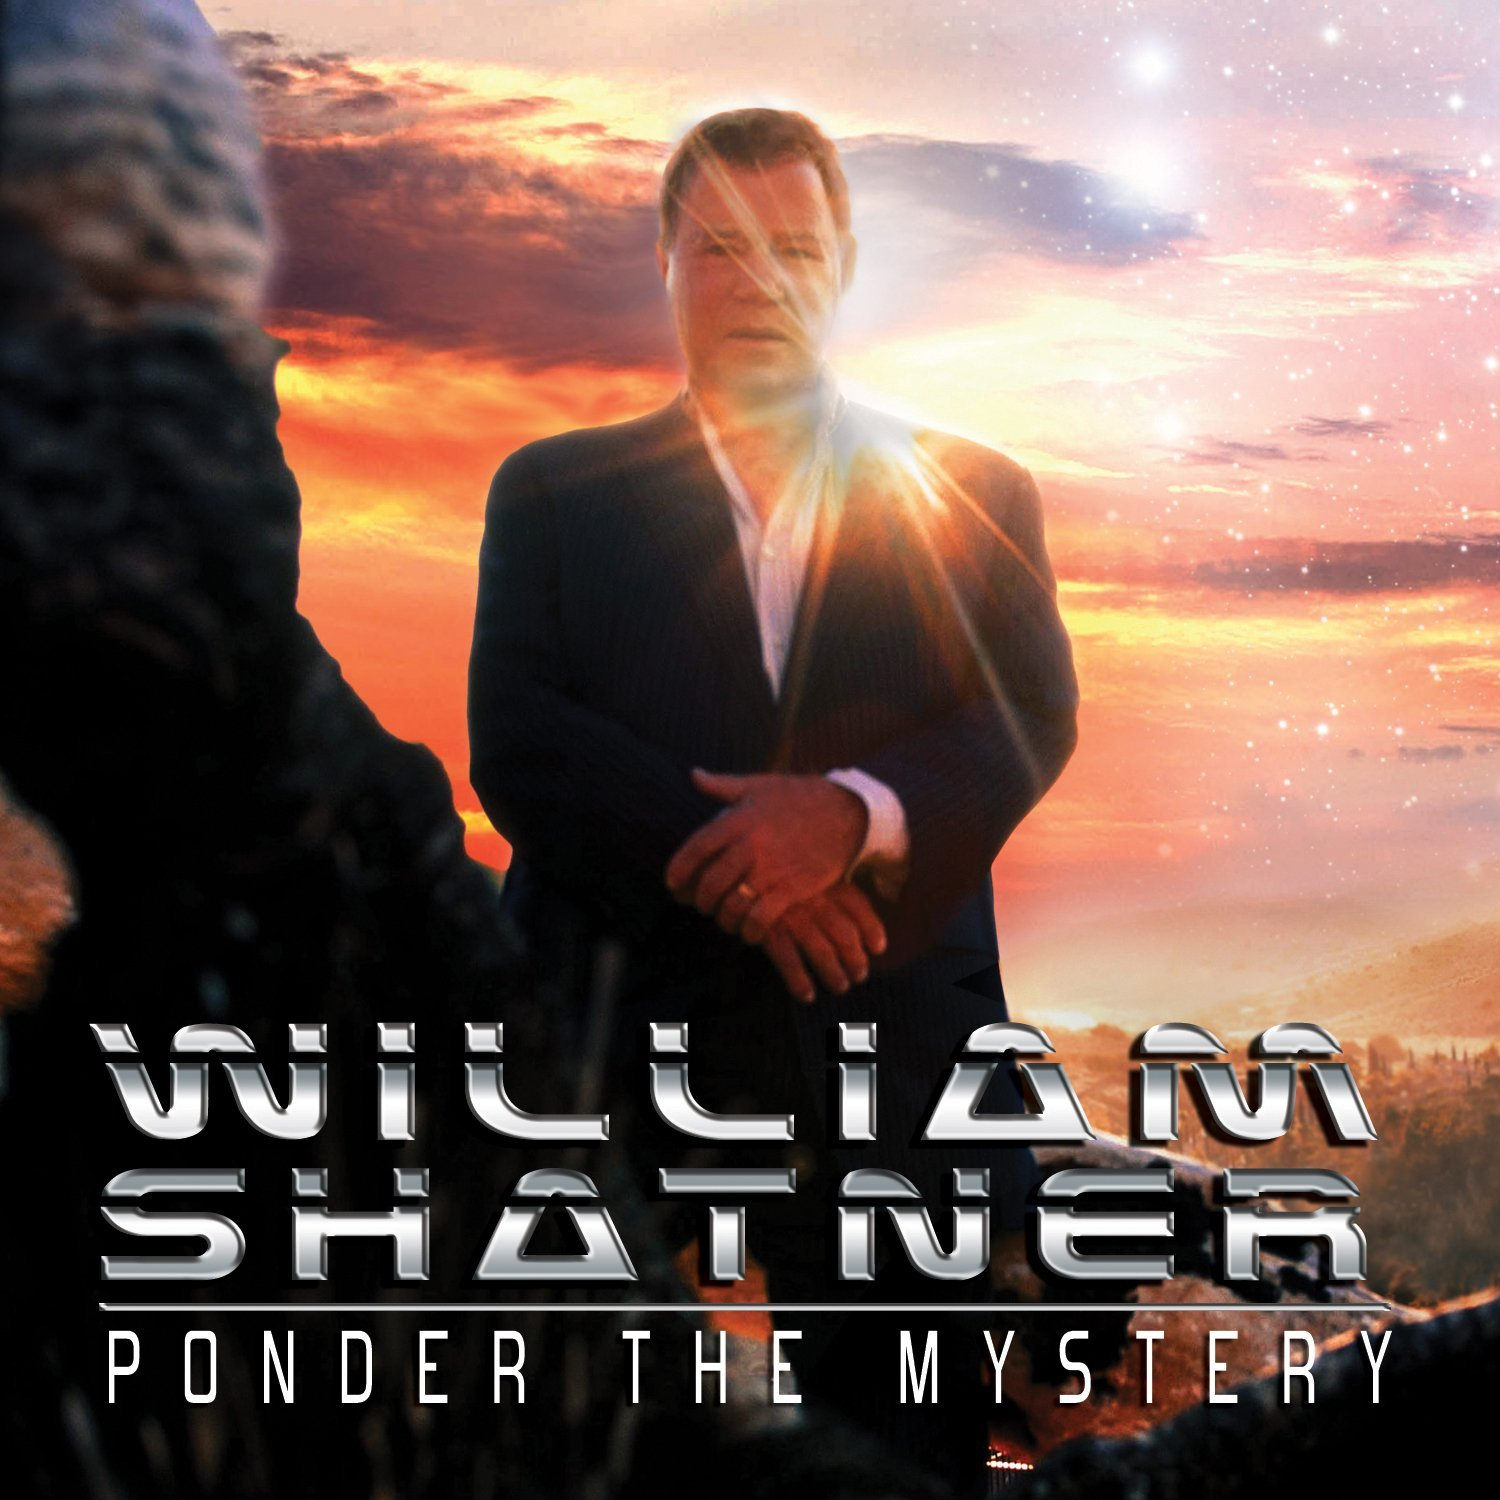 william_shatner_ponder_the_mystery_2013.jpg